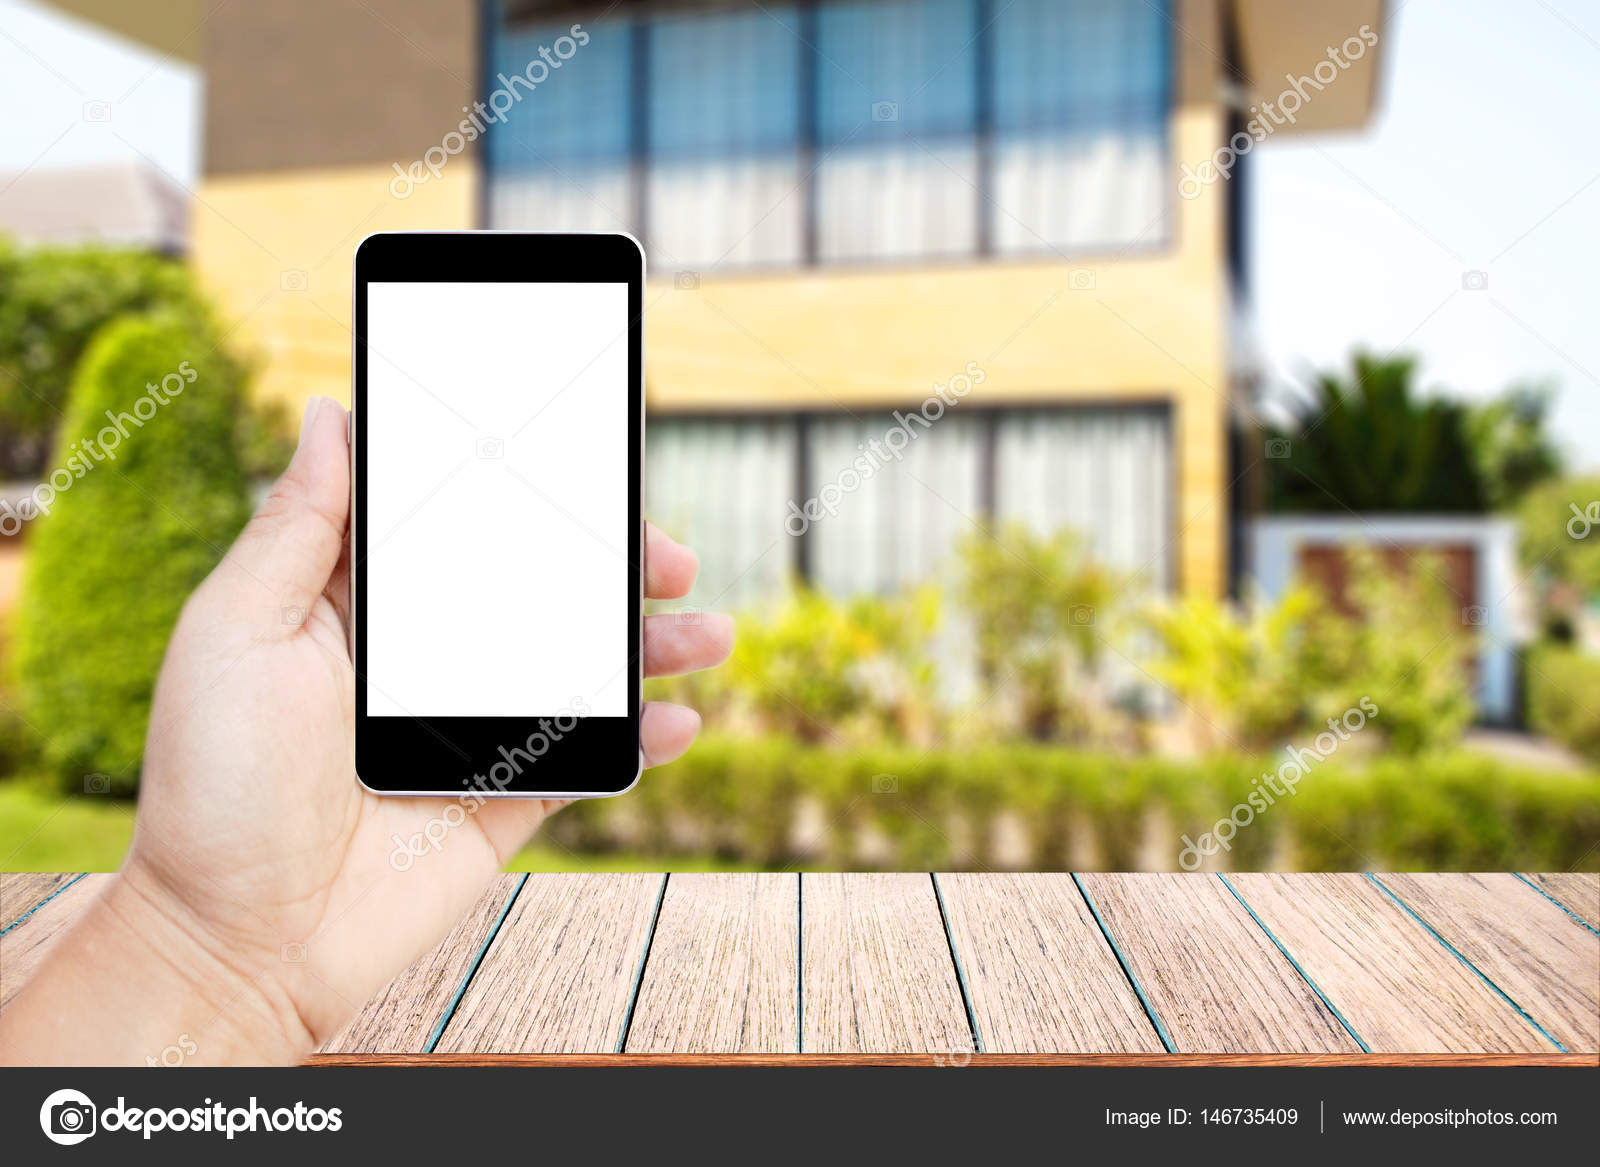 Mock up image of hand holding black mobile phone with blank